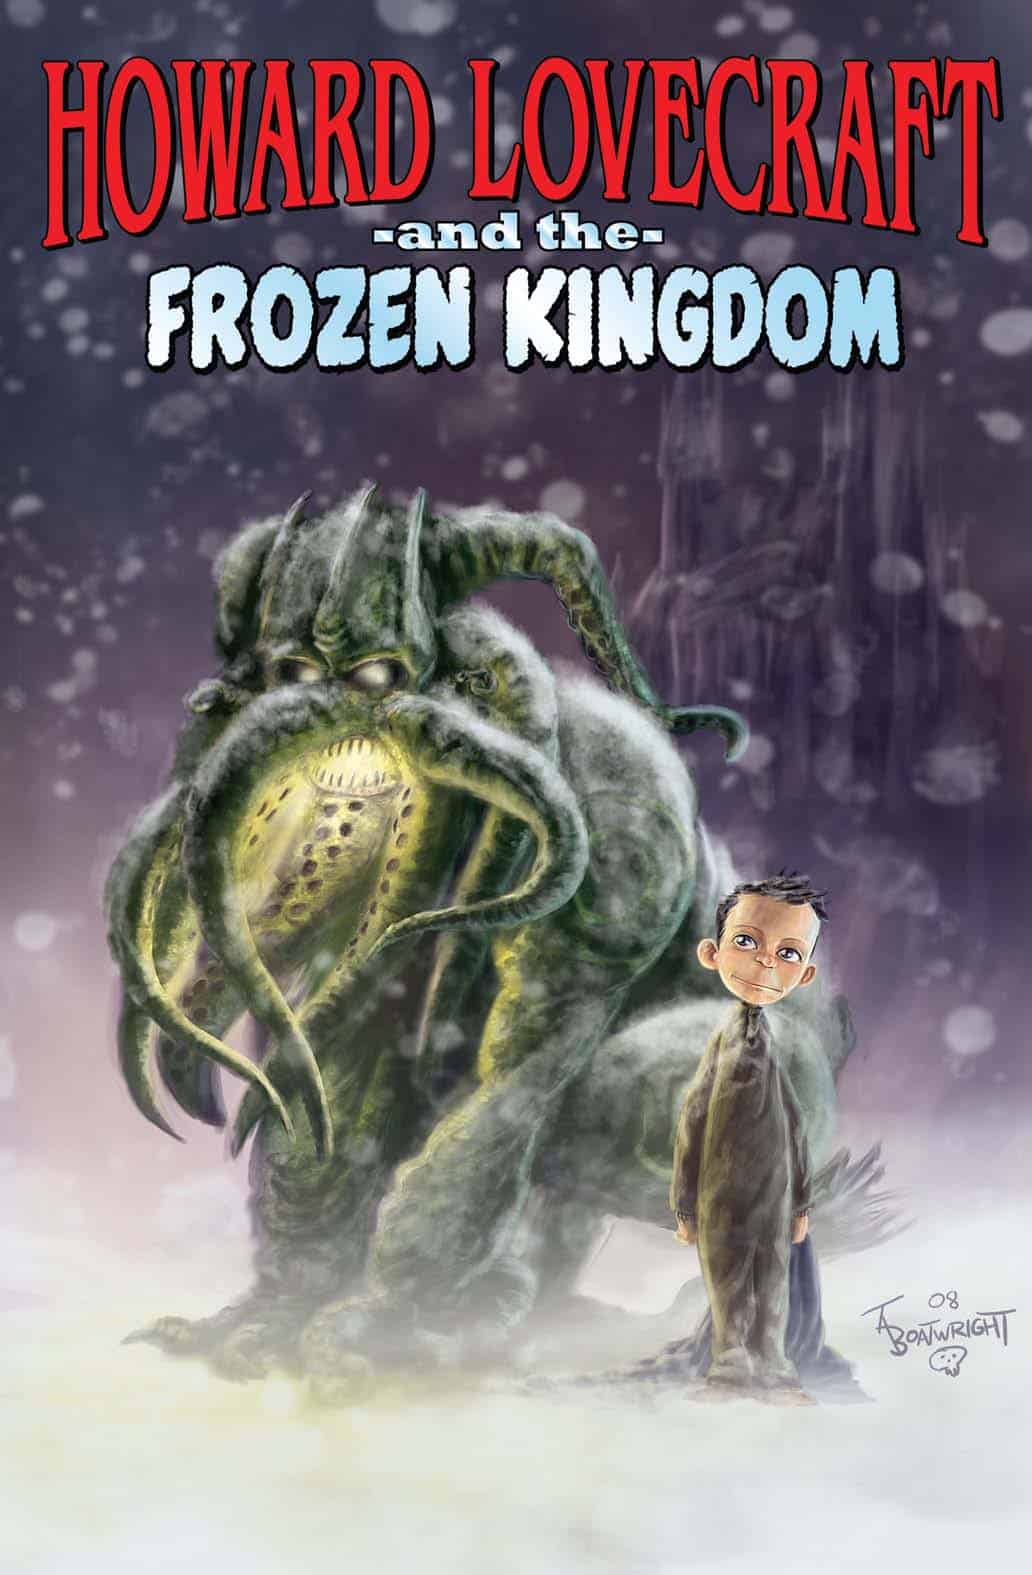 Howard-Lovecraft-and-the-Frozen-Kingdom-Cover